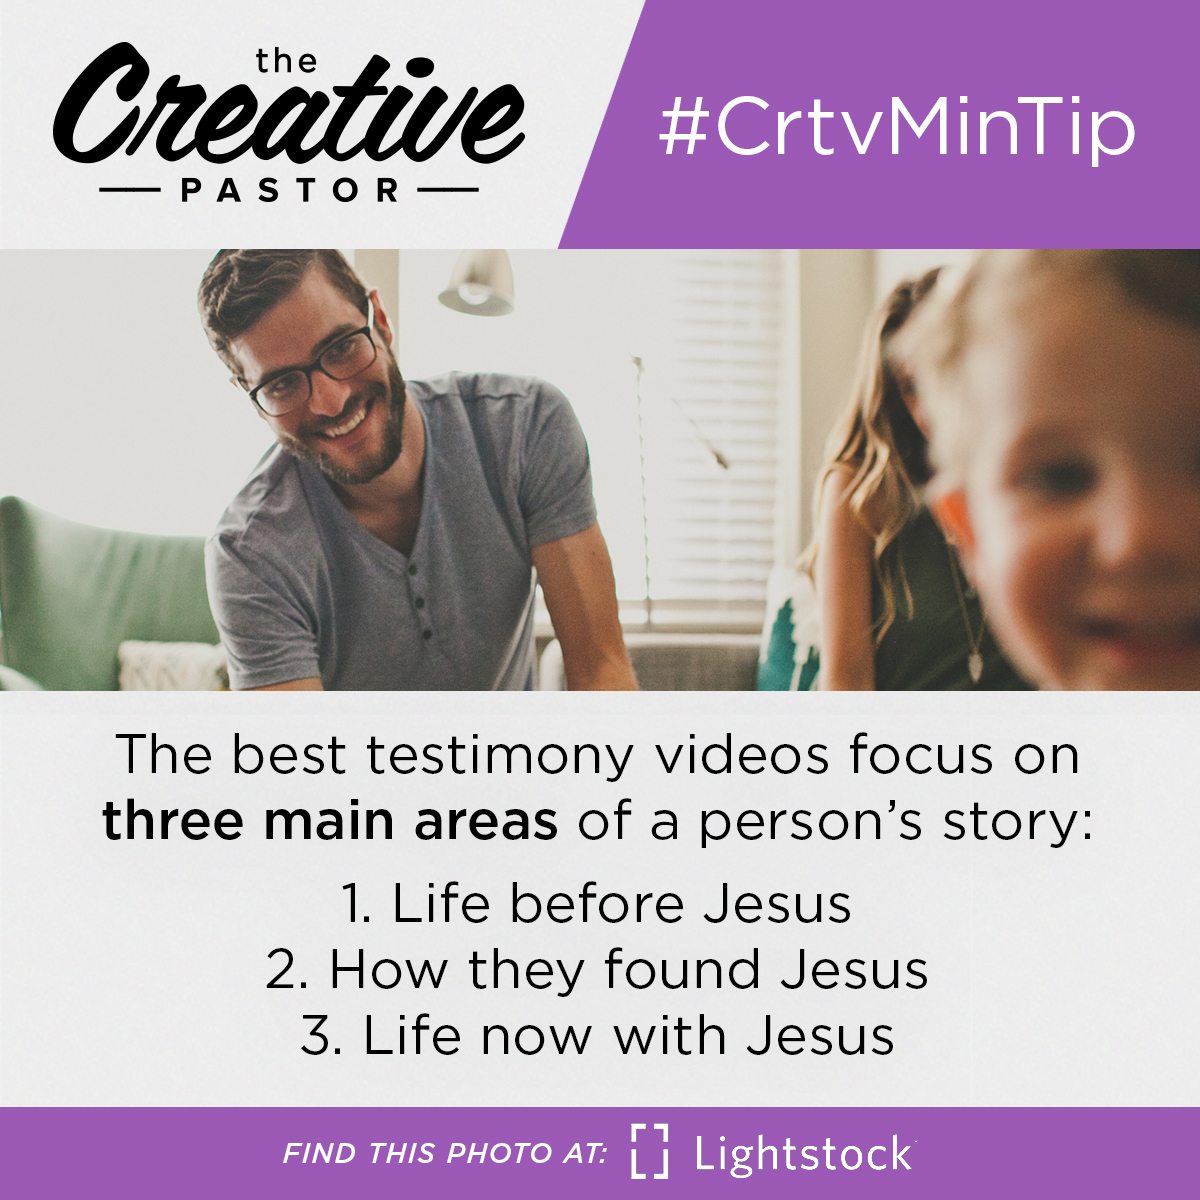 #CrtvMinTip: The best testimony videos focus on three main areas of a person's story: 1. Life before Jesus 2. How they found Jesus 3. Life now with Jesus